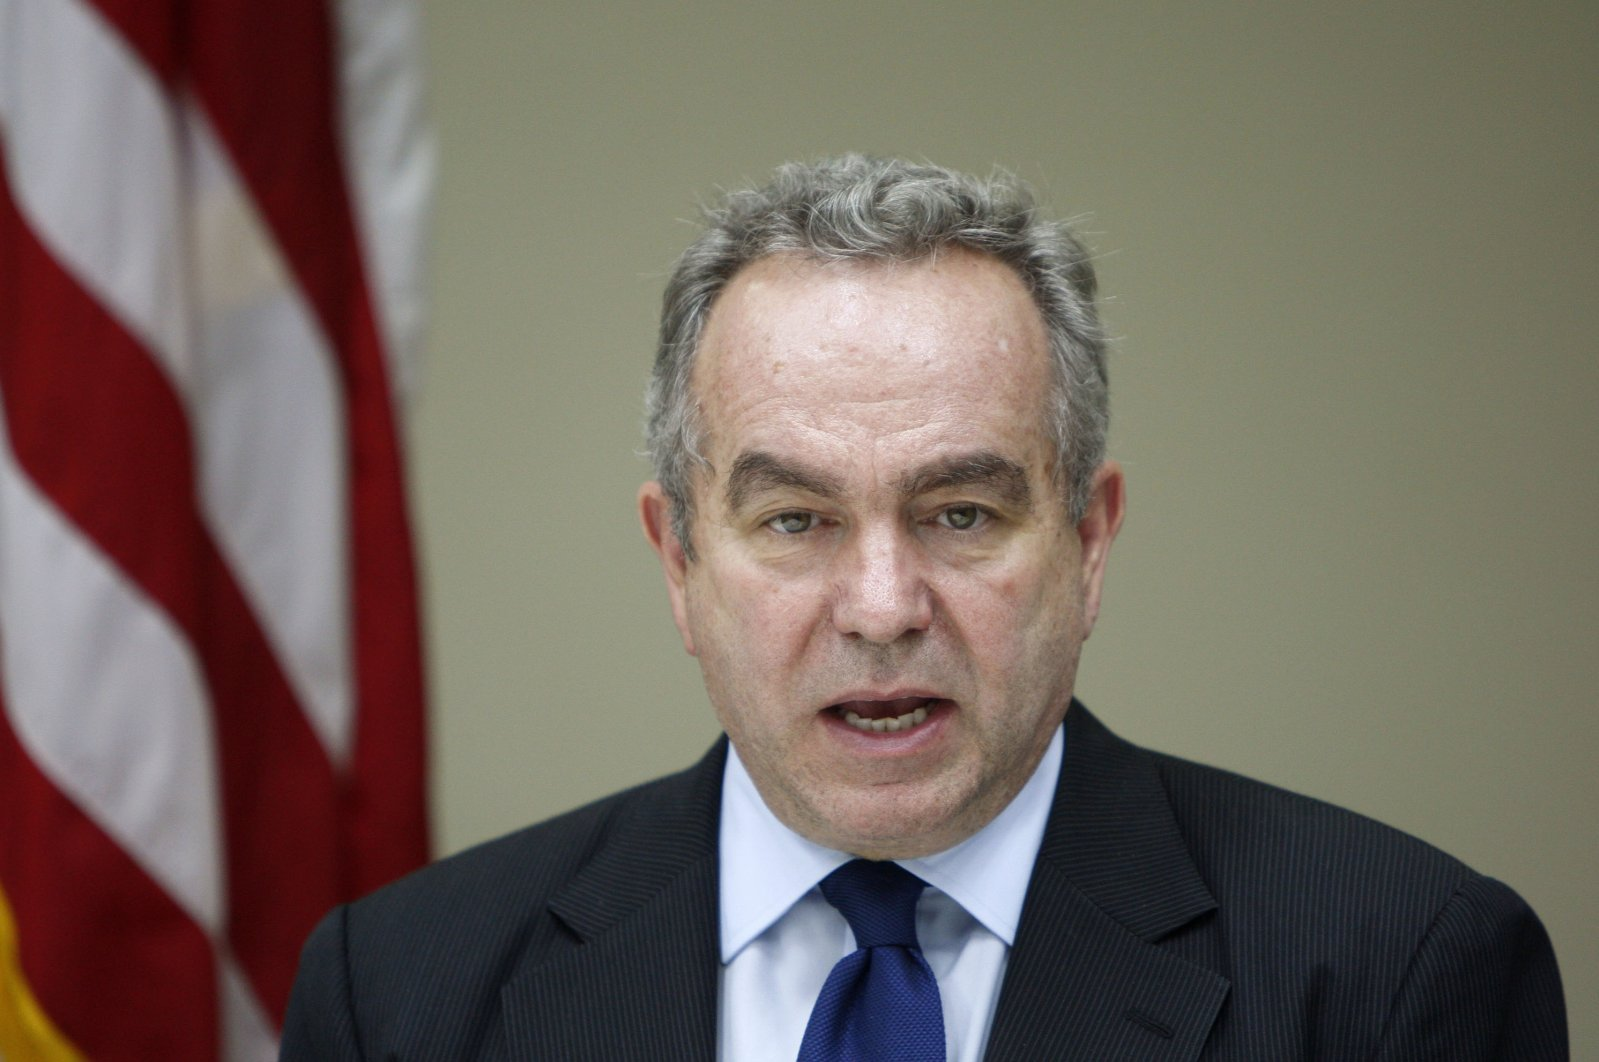 U.S. Assistant Secretary of State for East Asian and Pacific Affairs Kurt Campbell speaks during a press conference at the U.S. Embassy in Kuala Lumpur, Malaysia, Dec. 13, 2012. (AP Photo)